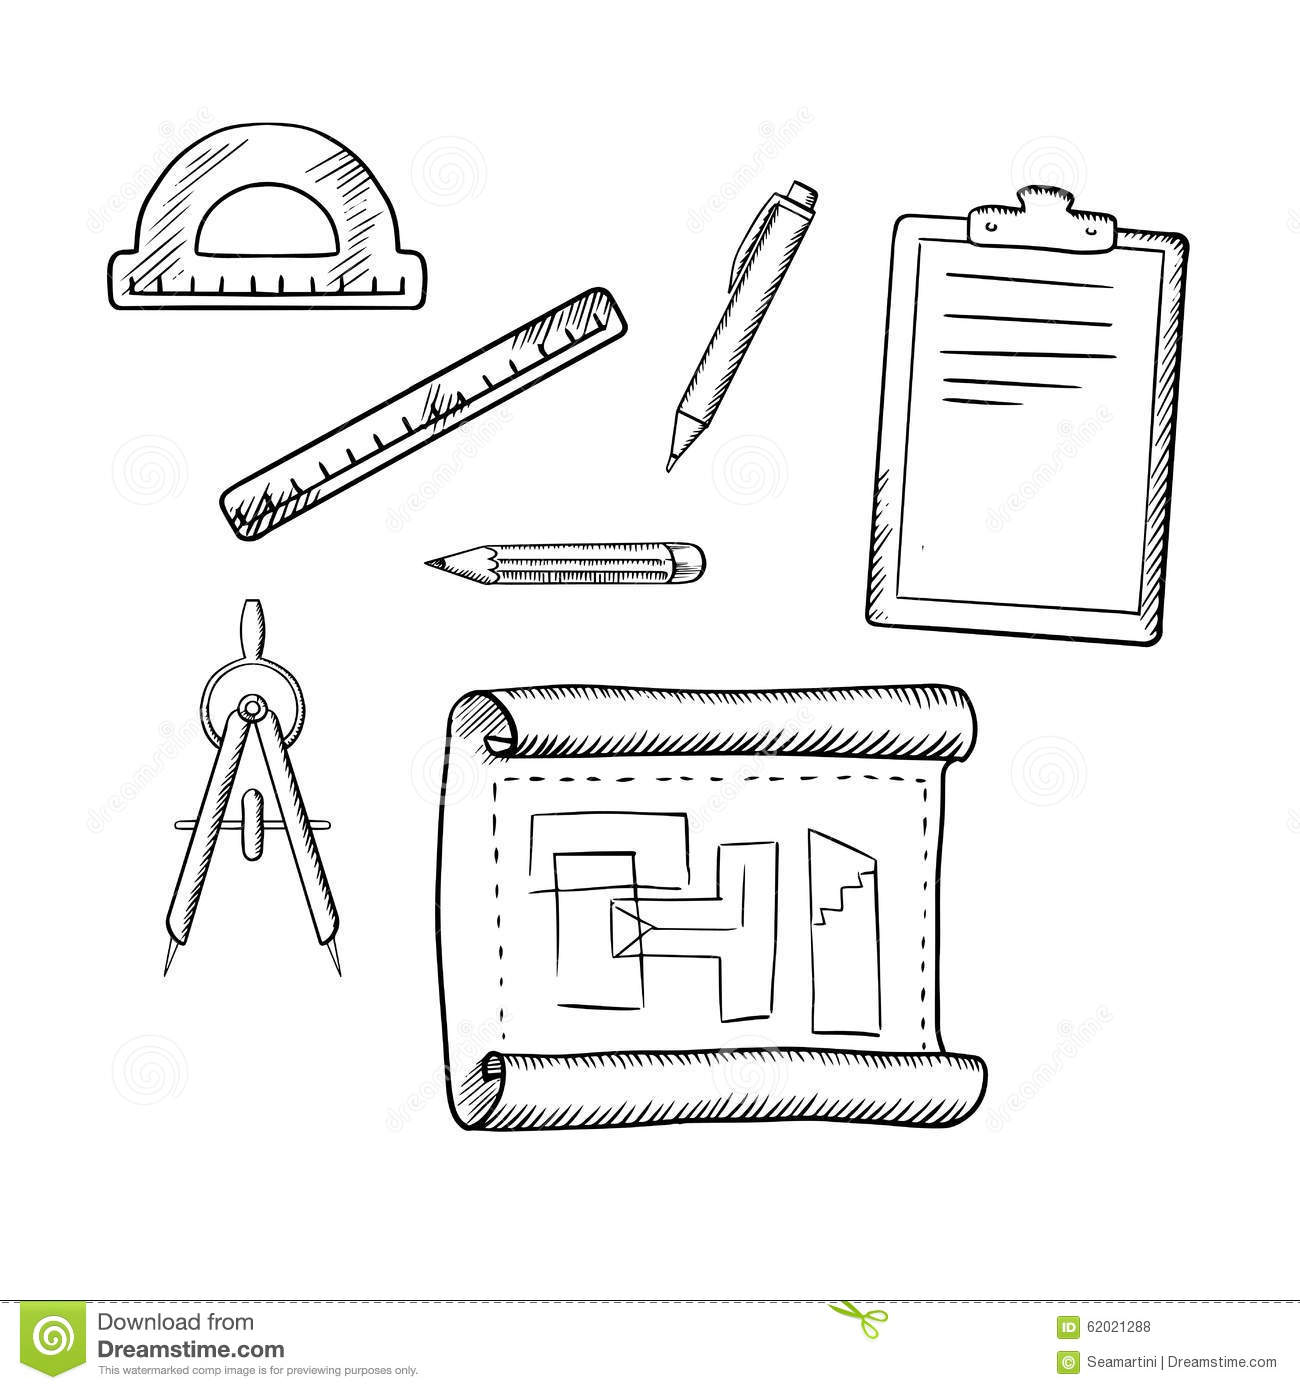 Architect drawing and tools sketches stock vector for Architecture drawing tools